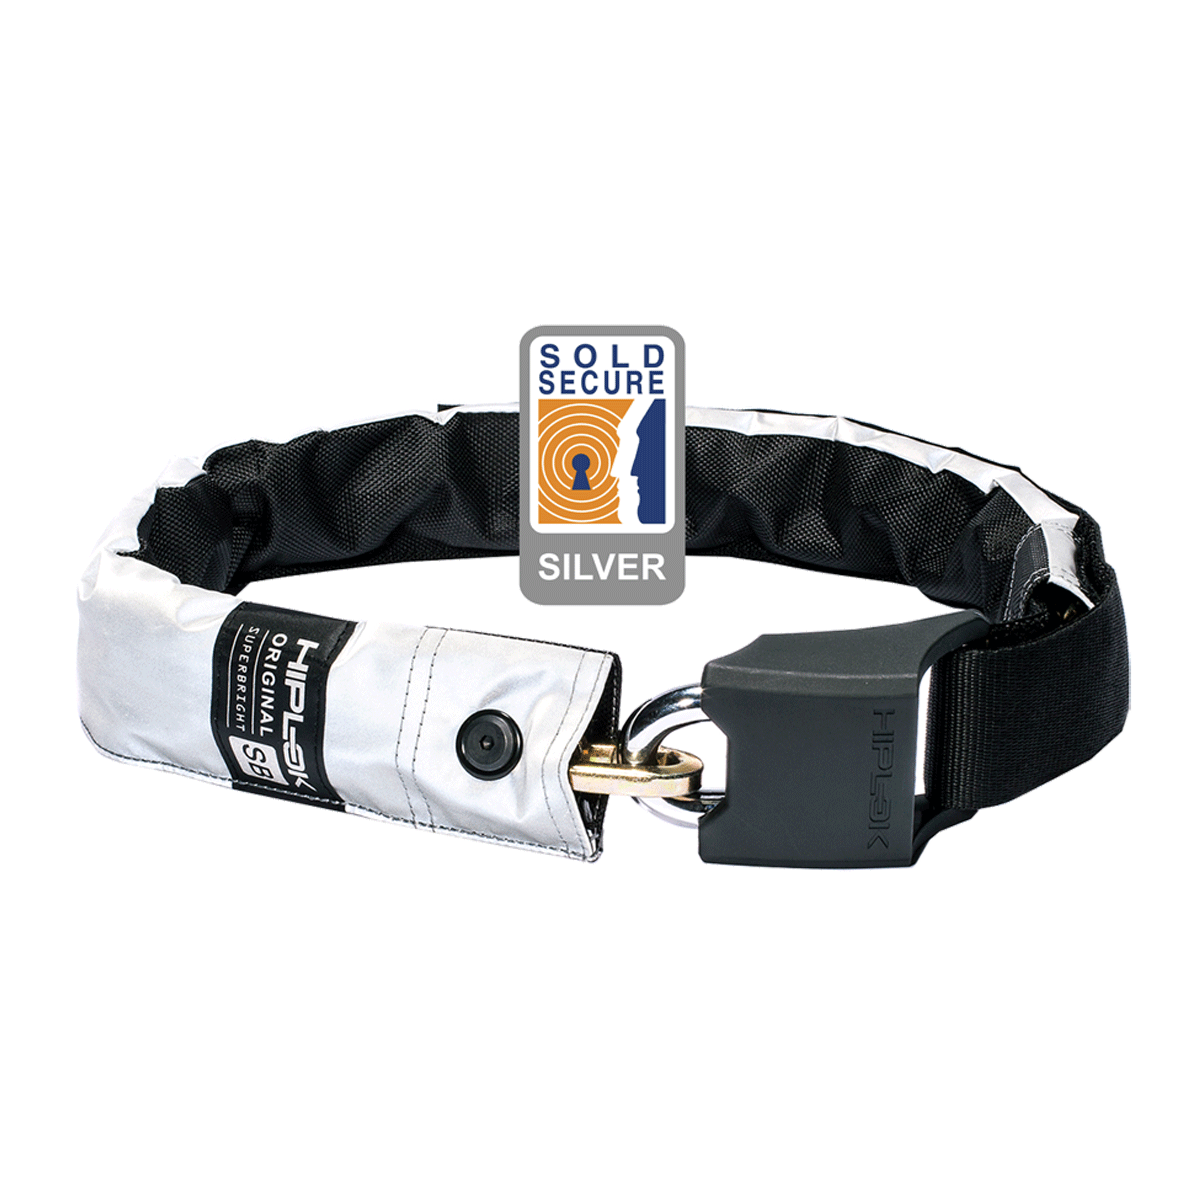 HIPLOK ORIGINAL V1.5 WEARABLE CHAIN LOCK 8MM X 90CM - WAIST 24-44 INCHES (SILVER SOLD SECURE) HIGH VISIBILITY